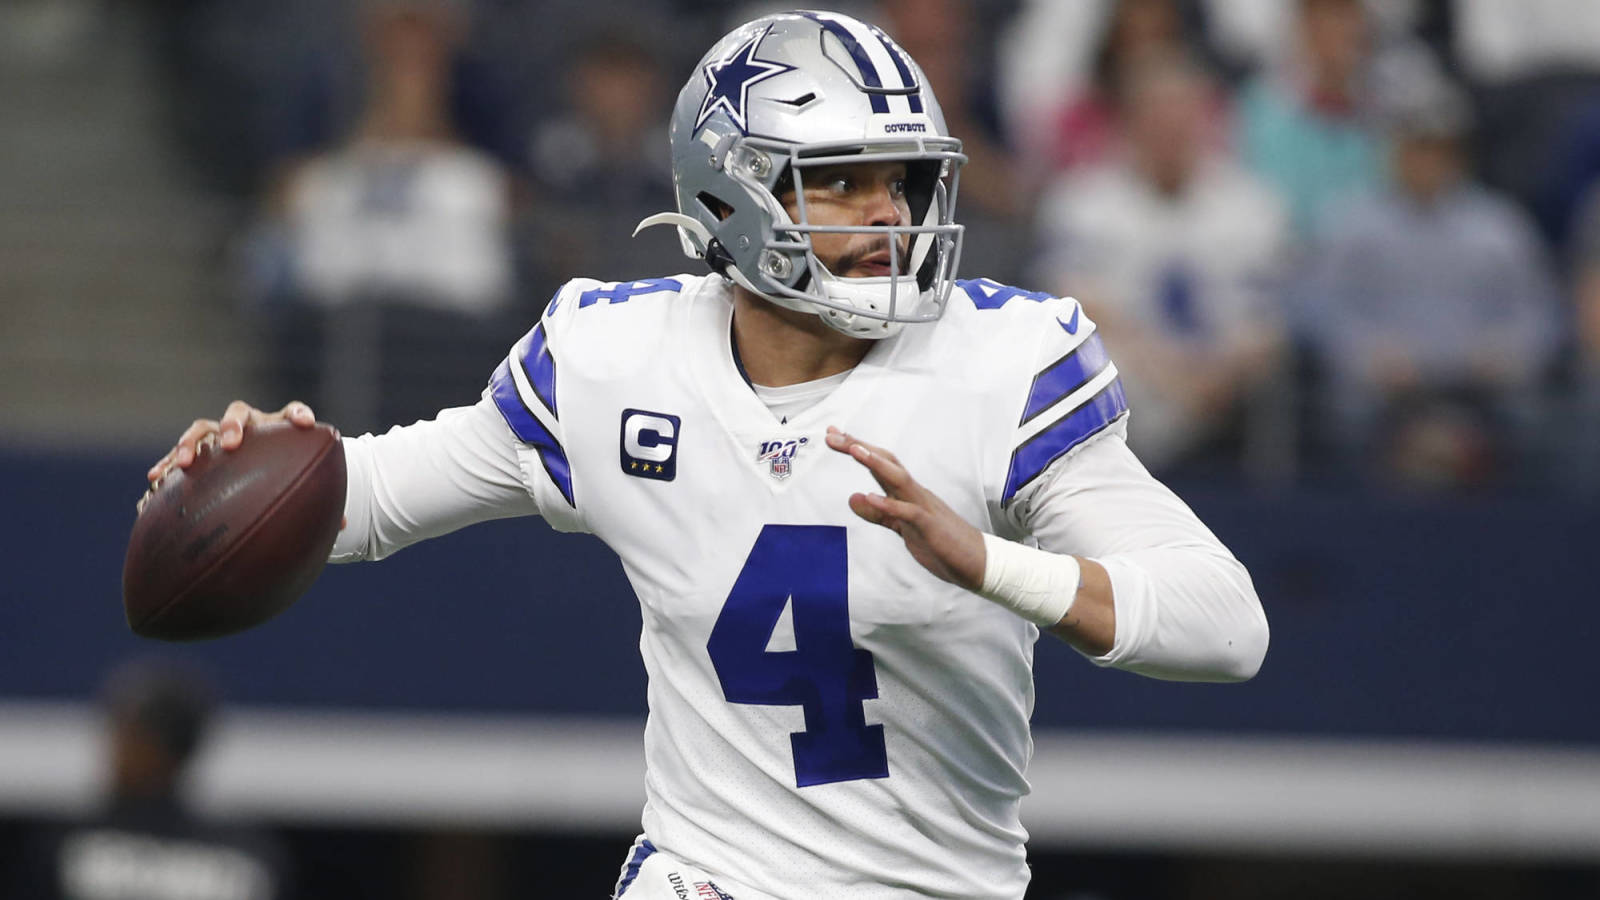 Dak Prescott, Cowboys have not talked contract in months